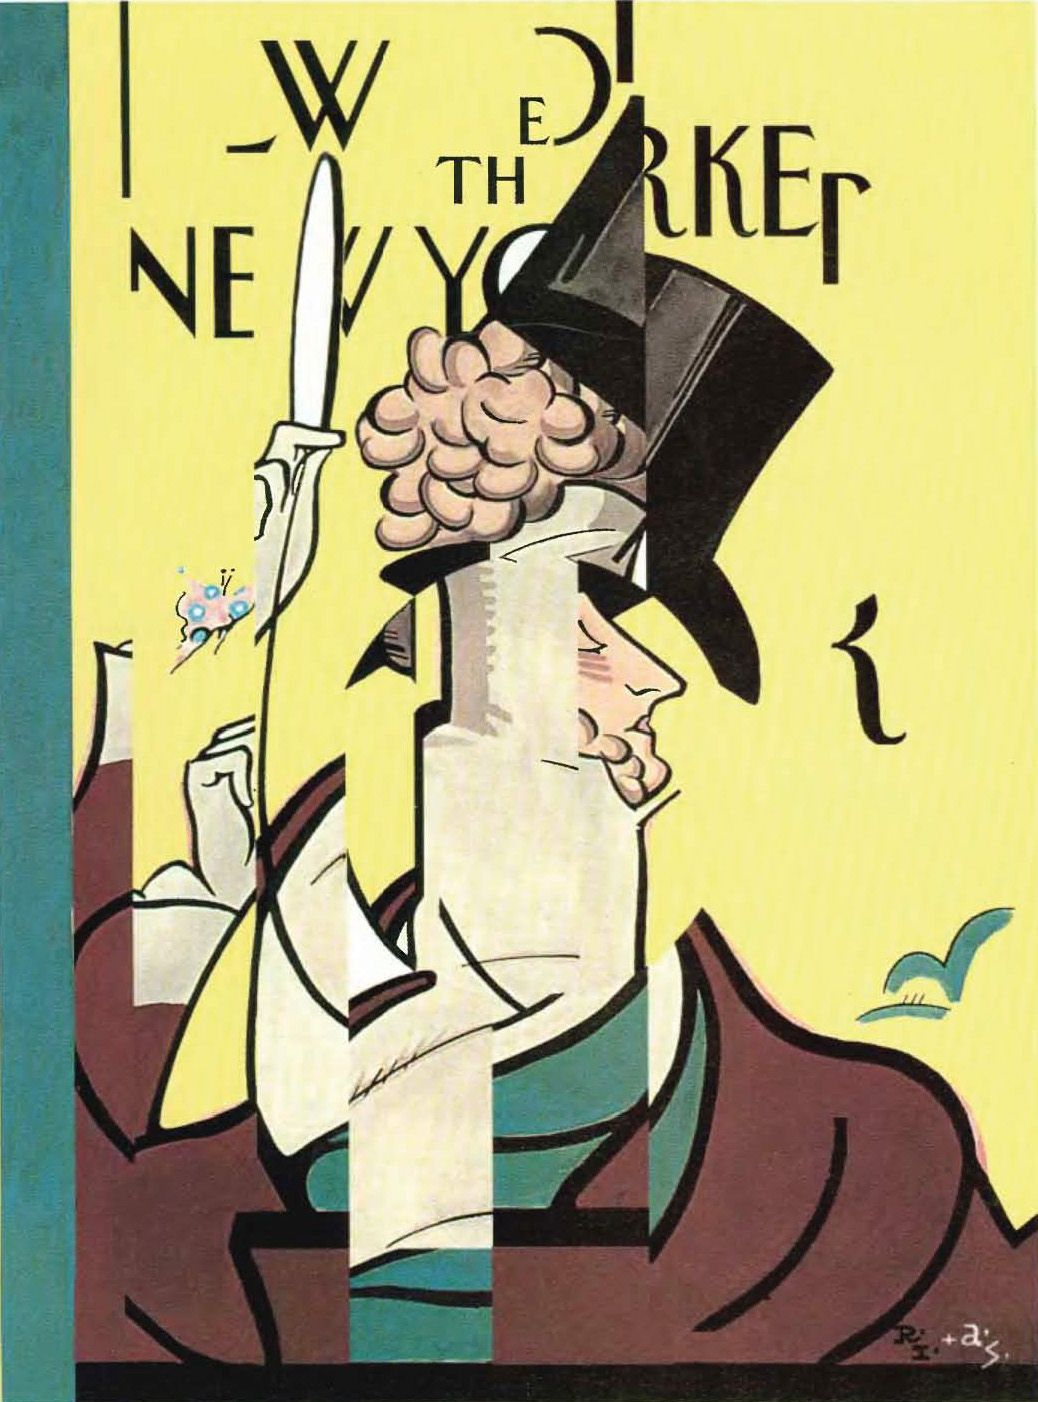 Eustace Tilley Celebrates 72nd Birthday >> Eustace Tilley Illustration By Art Spiegelman Some Tilleys Art